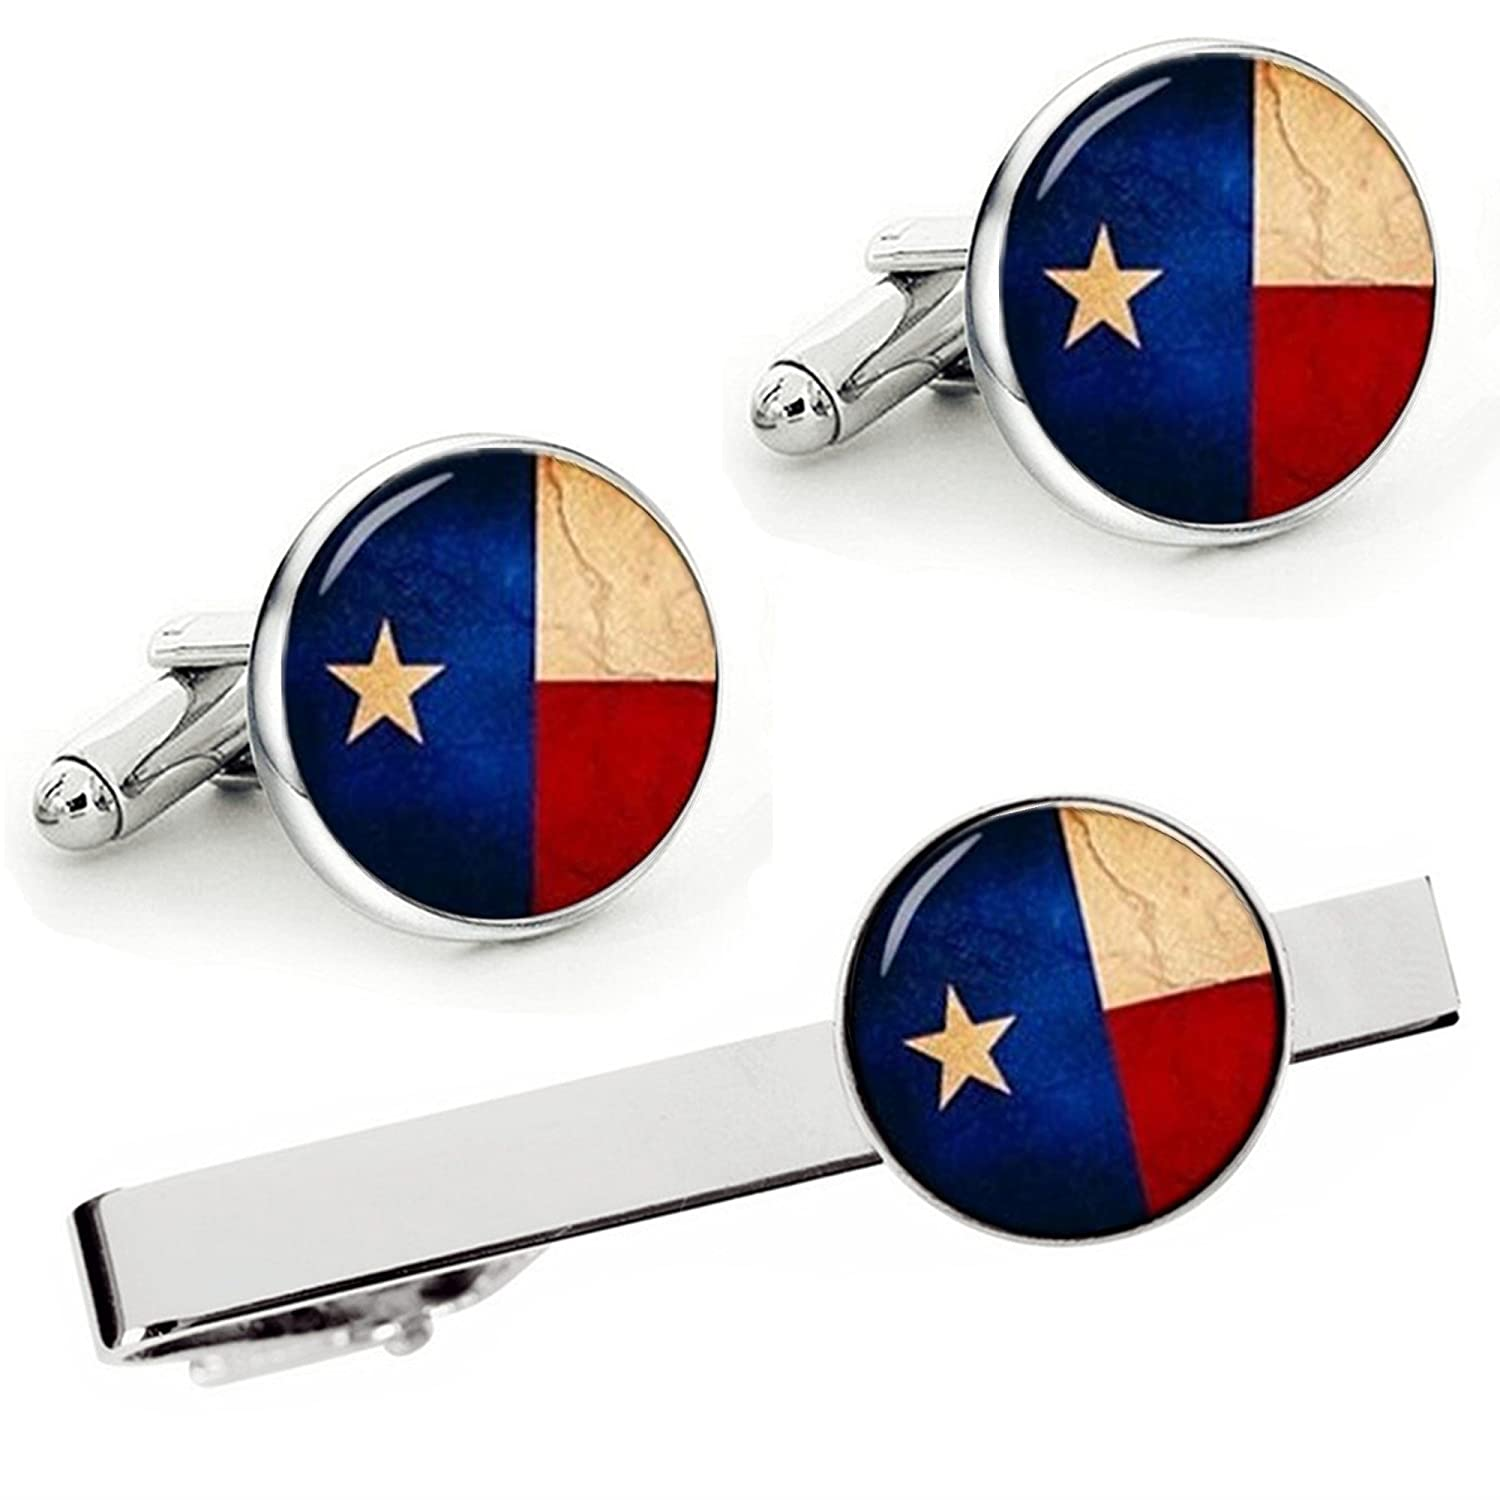 Kooer Vintage Flag of Texas Cufflinks Texas State Flag Custom Personalized Flag Cuff Links Wedding Gift UK_B07C9SK3RT